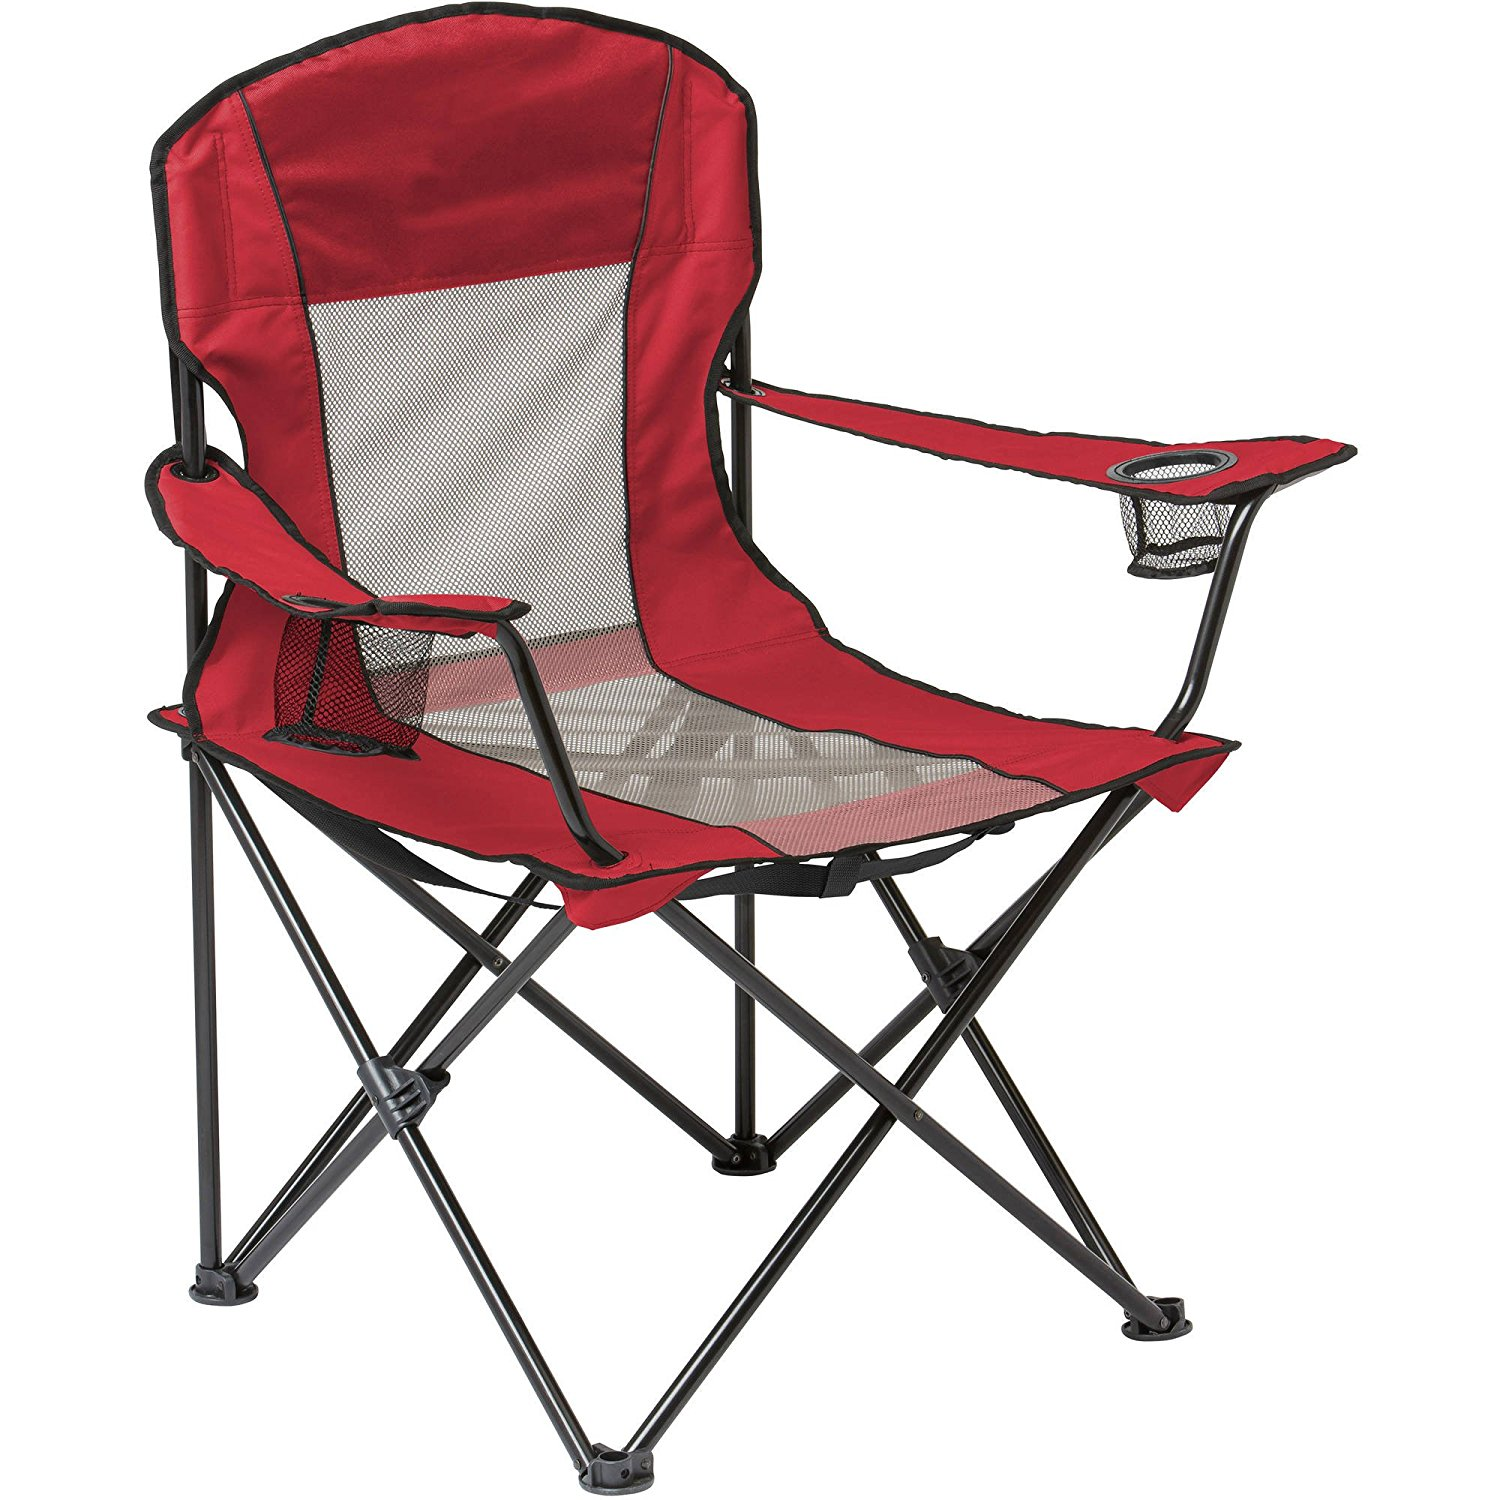 Pleasing Buy Ozark Trail Oversized Mesh Lounge Chair In Cheap Price Theyellowbook Wood Chair Design Ideas Theyellowbookinfo